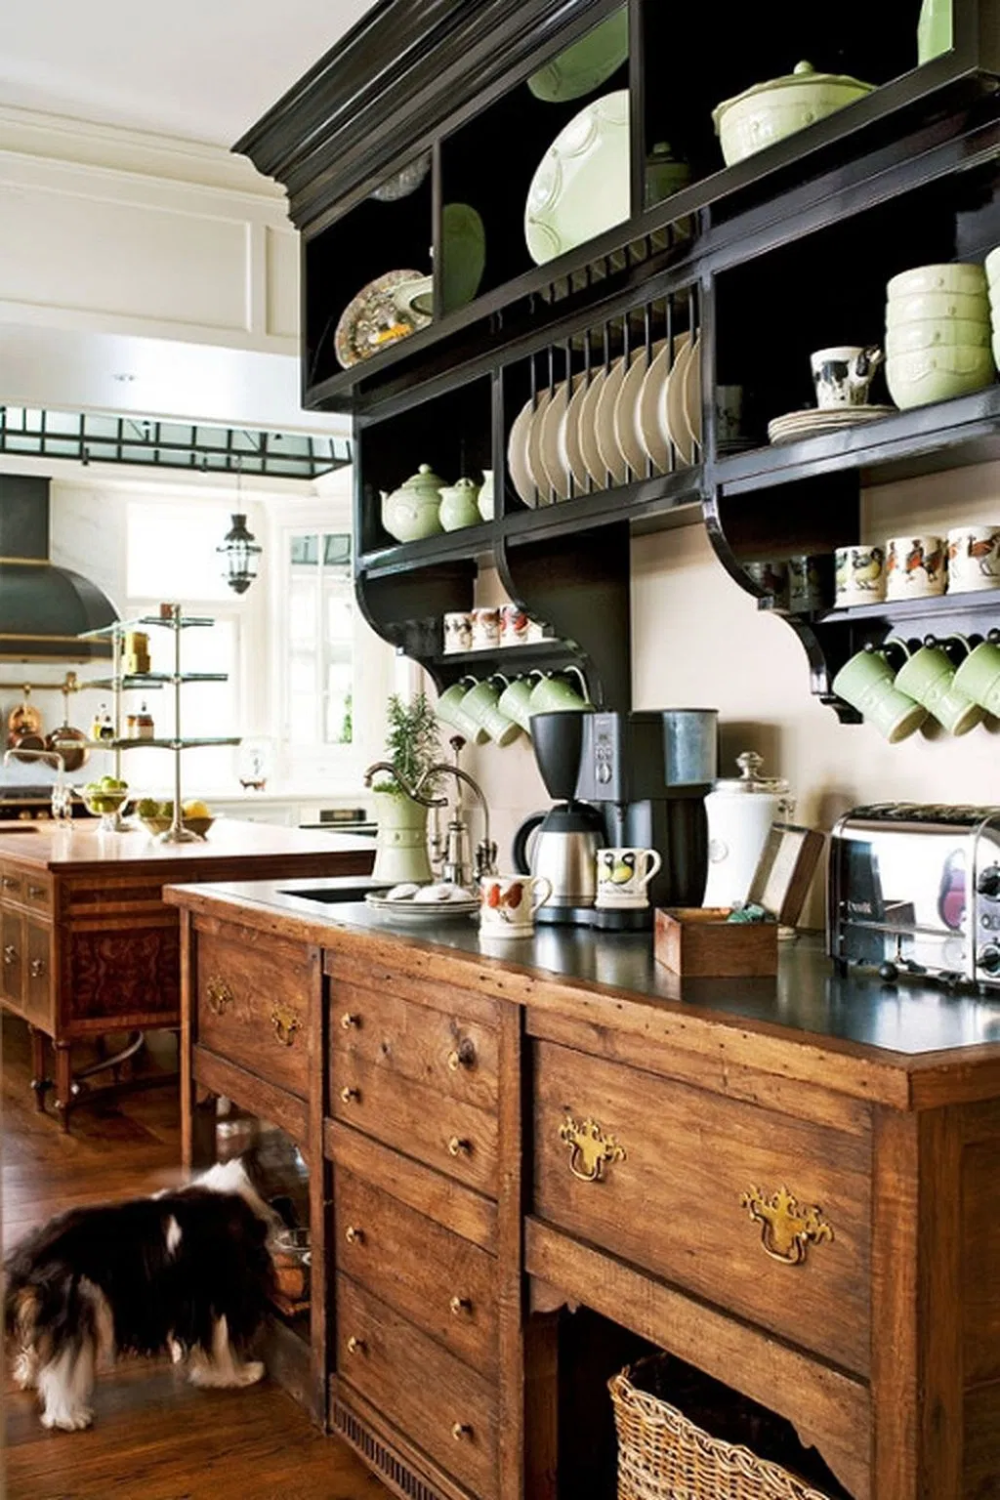 Photo of The hutch and the wall shelves were all custom-built and designed by the interior designer